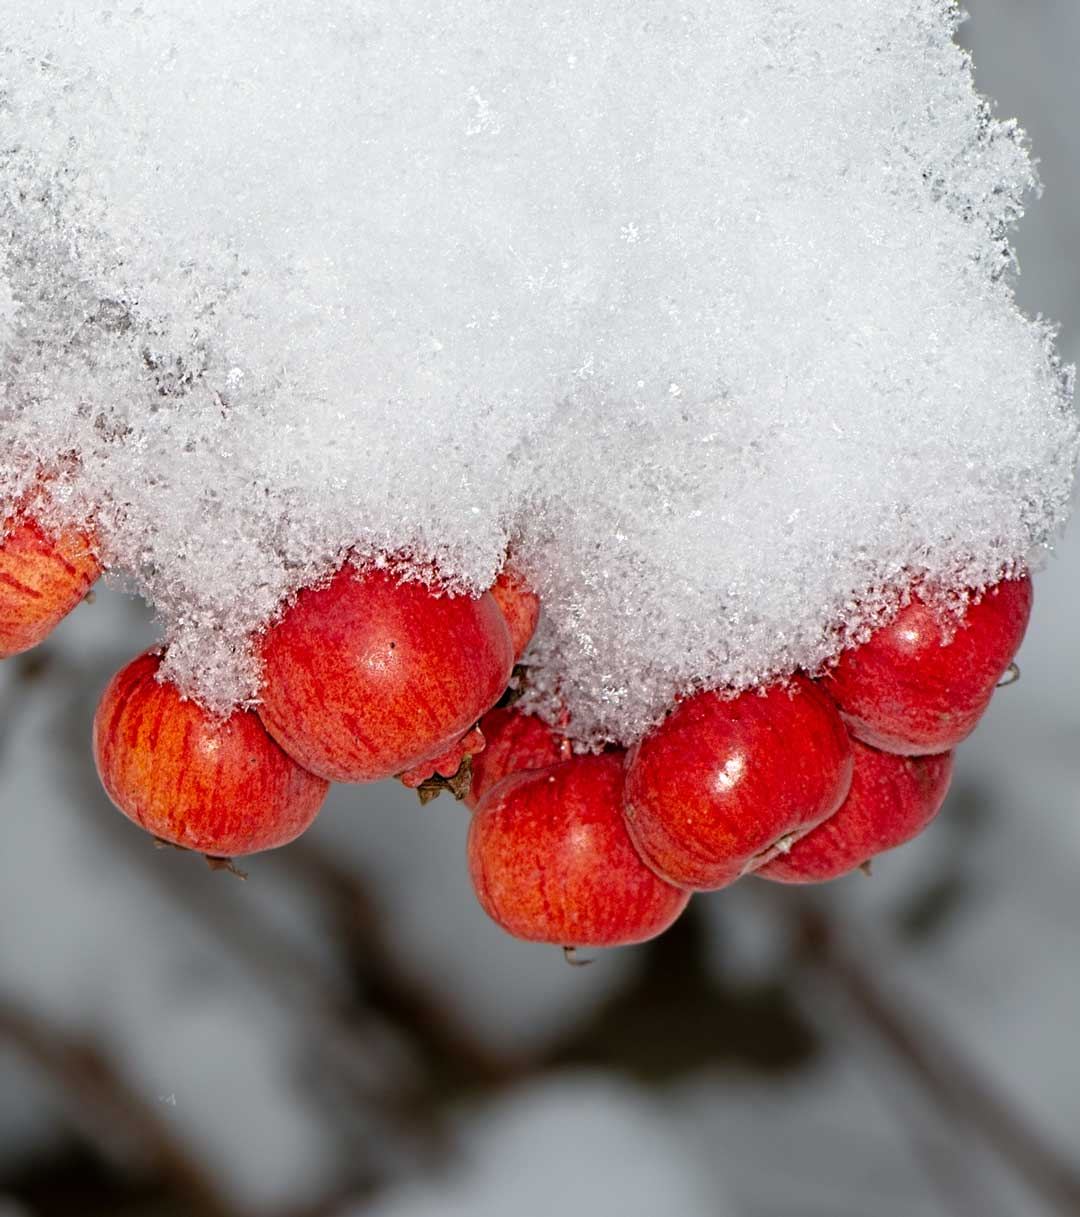 Frozen Red Apples on Tree